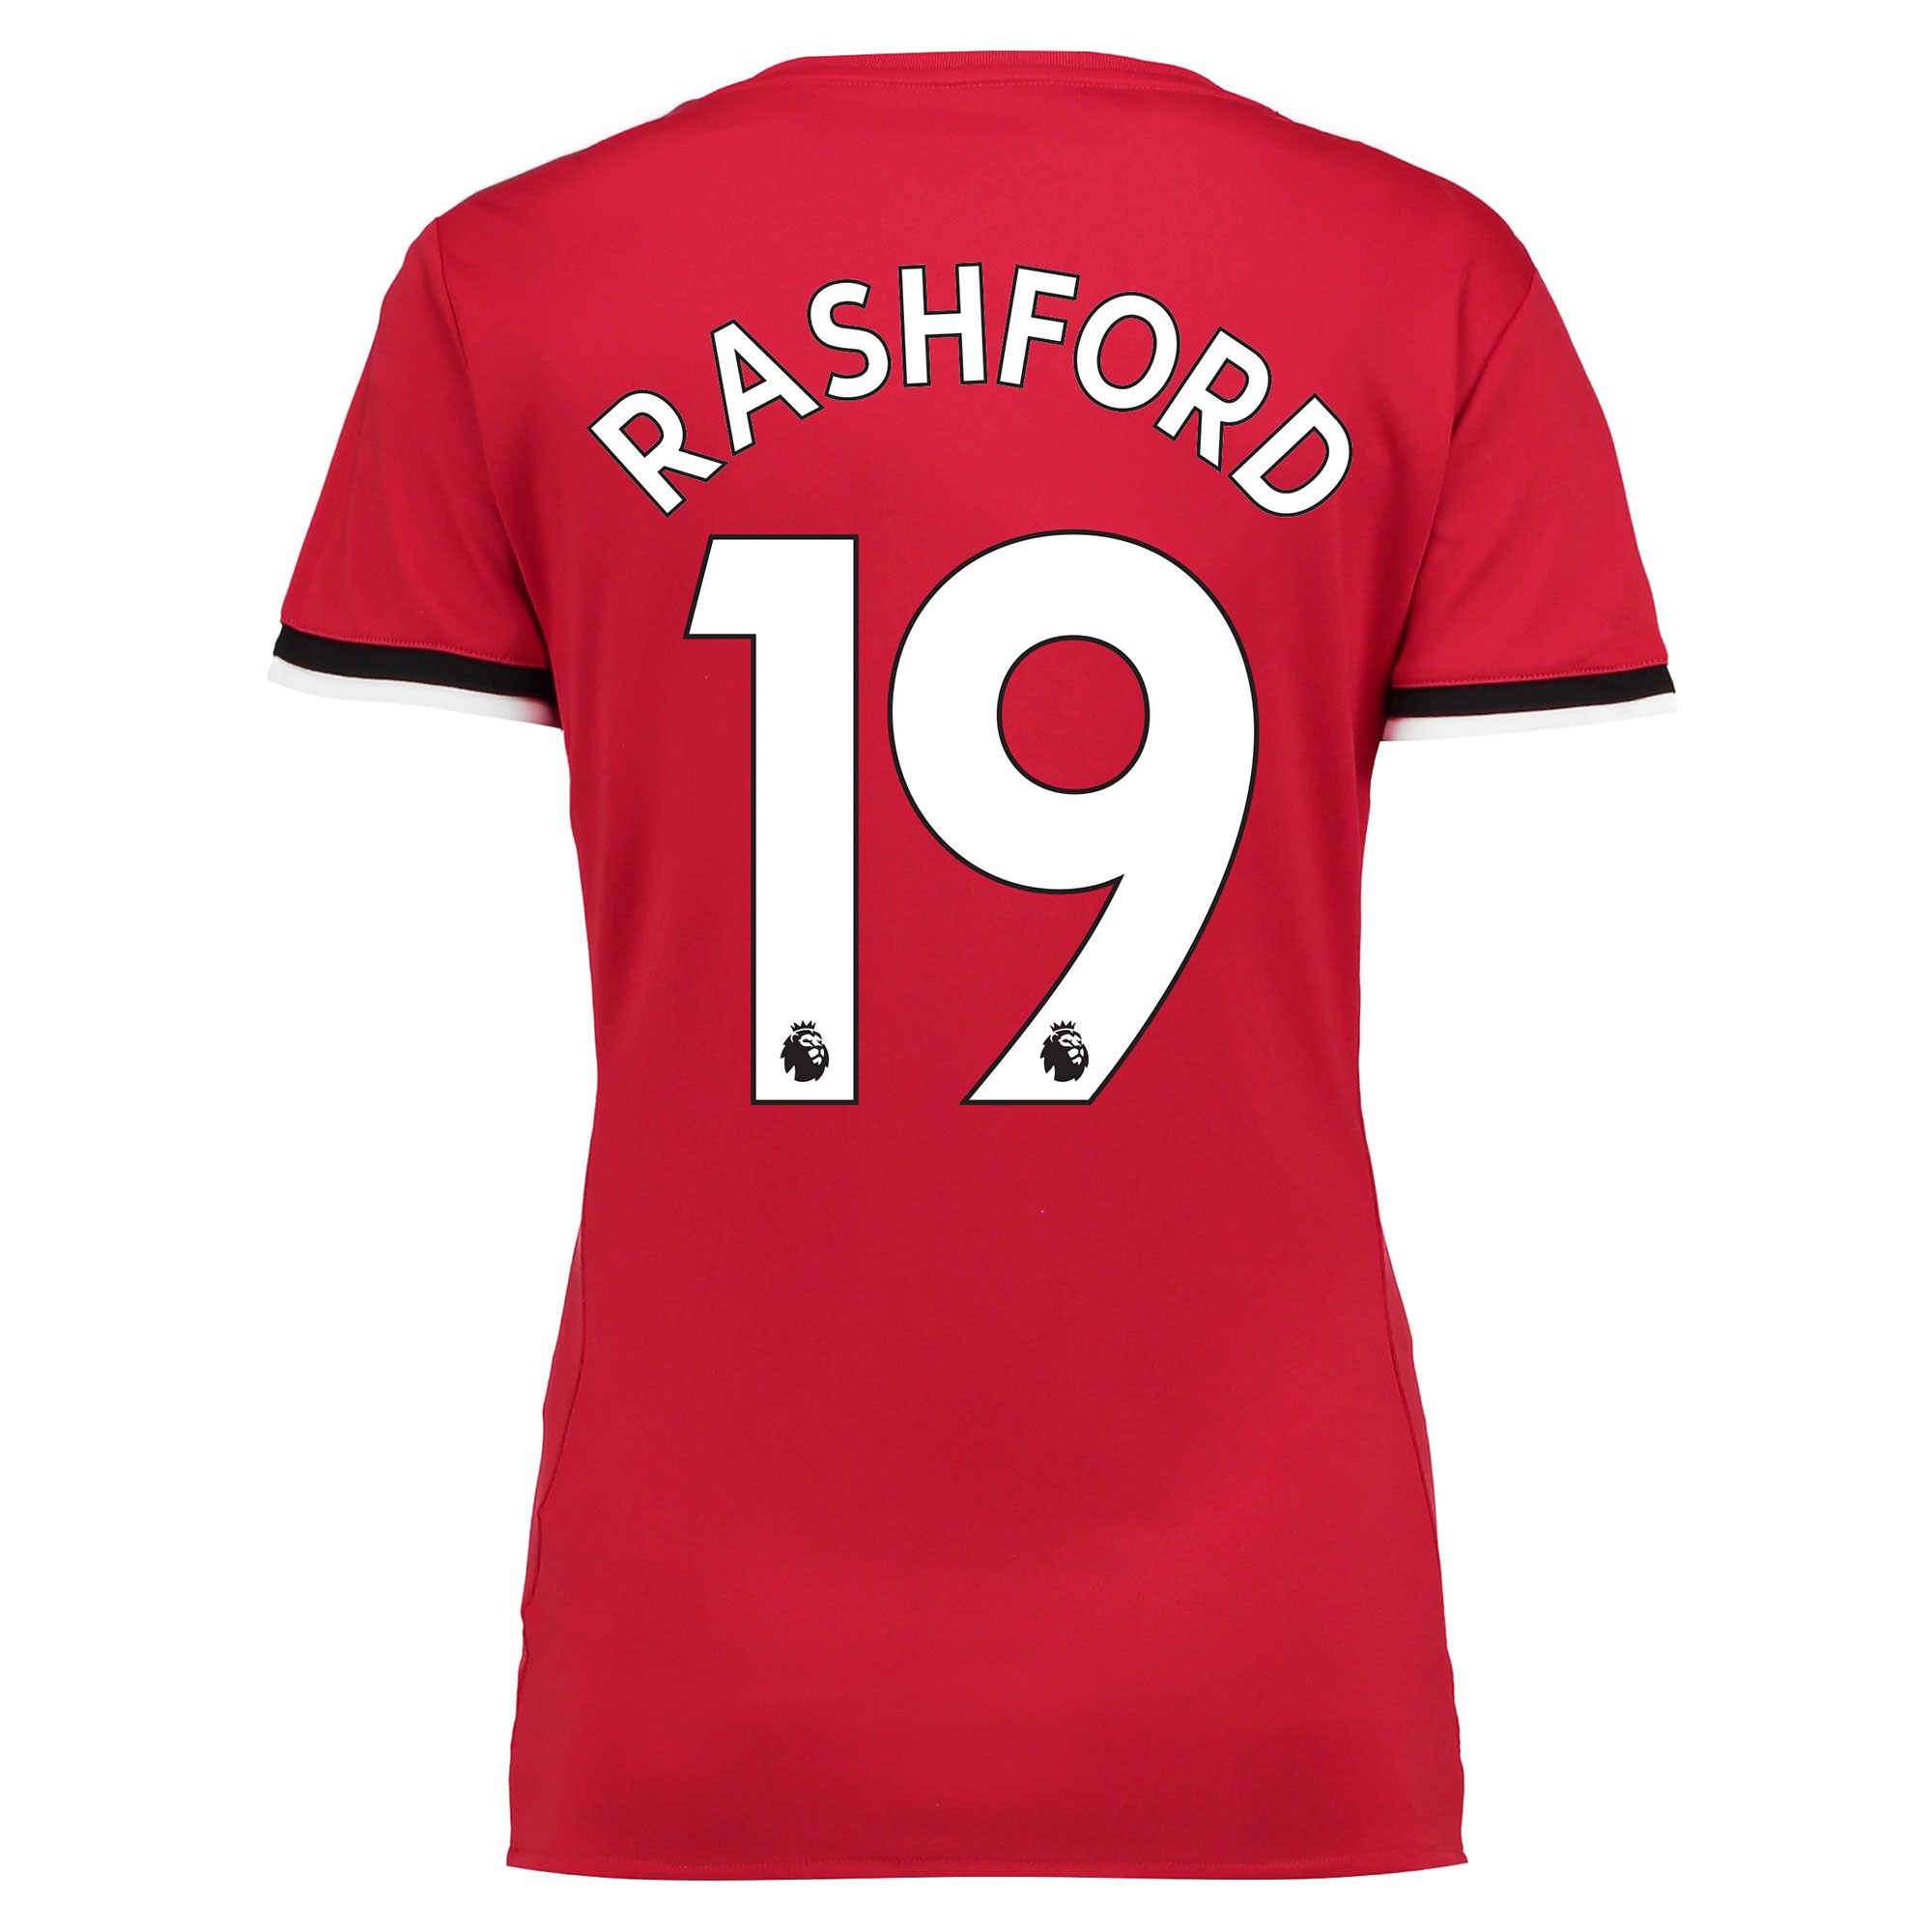 Manchester United Home Shirt 2017-18 - Womens with Rashford 19 printin